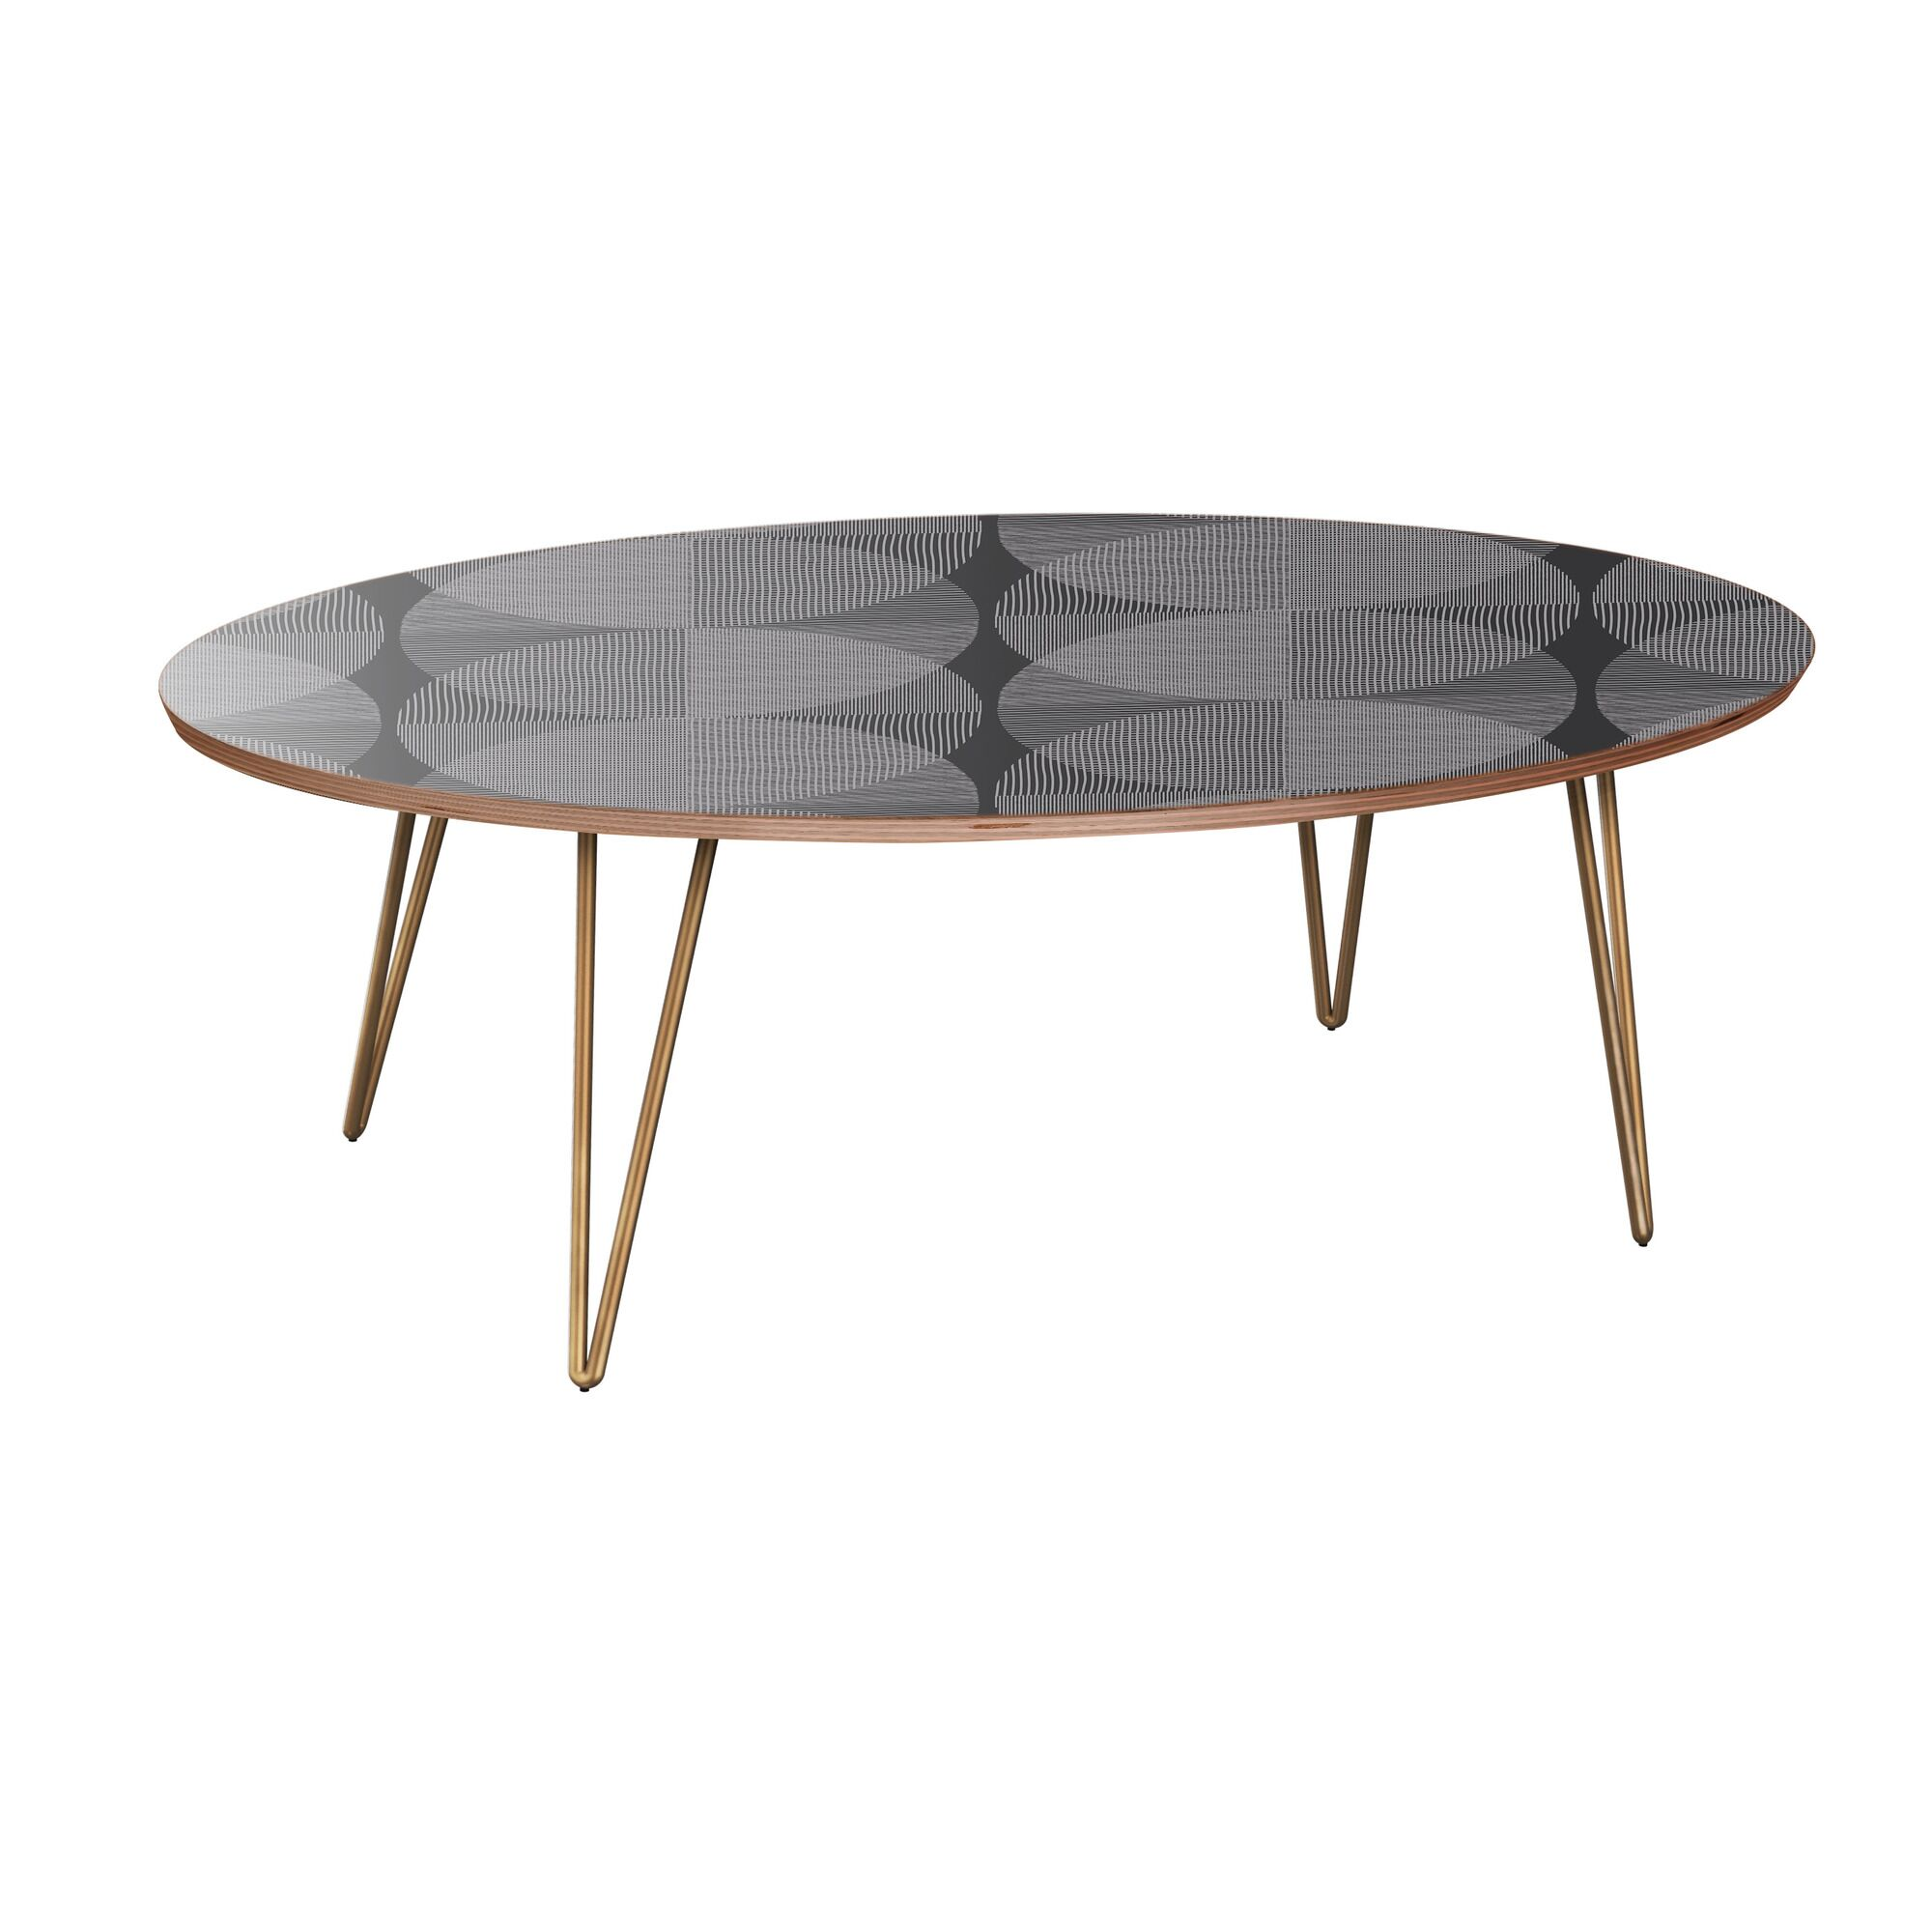 Kit Coffee Table Table Base Color: Brass, Table Top Color: Walnut